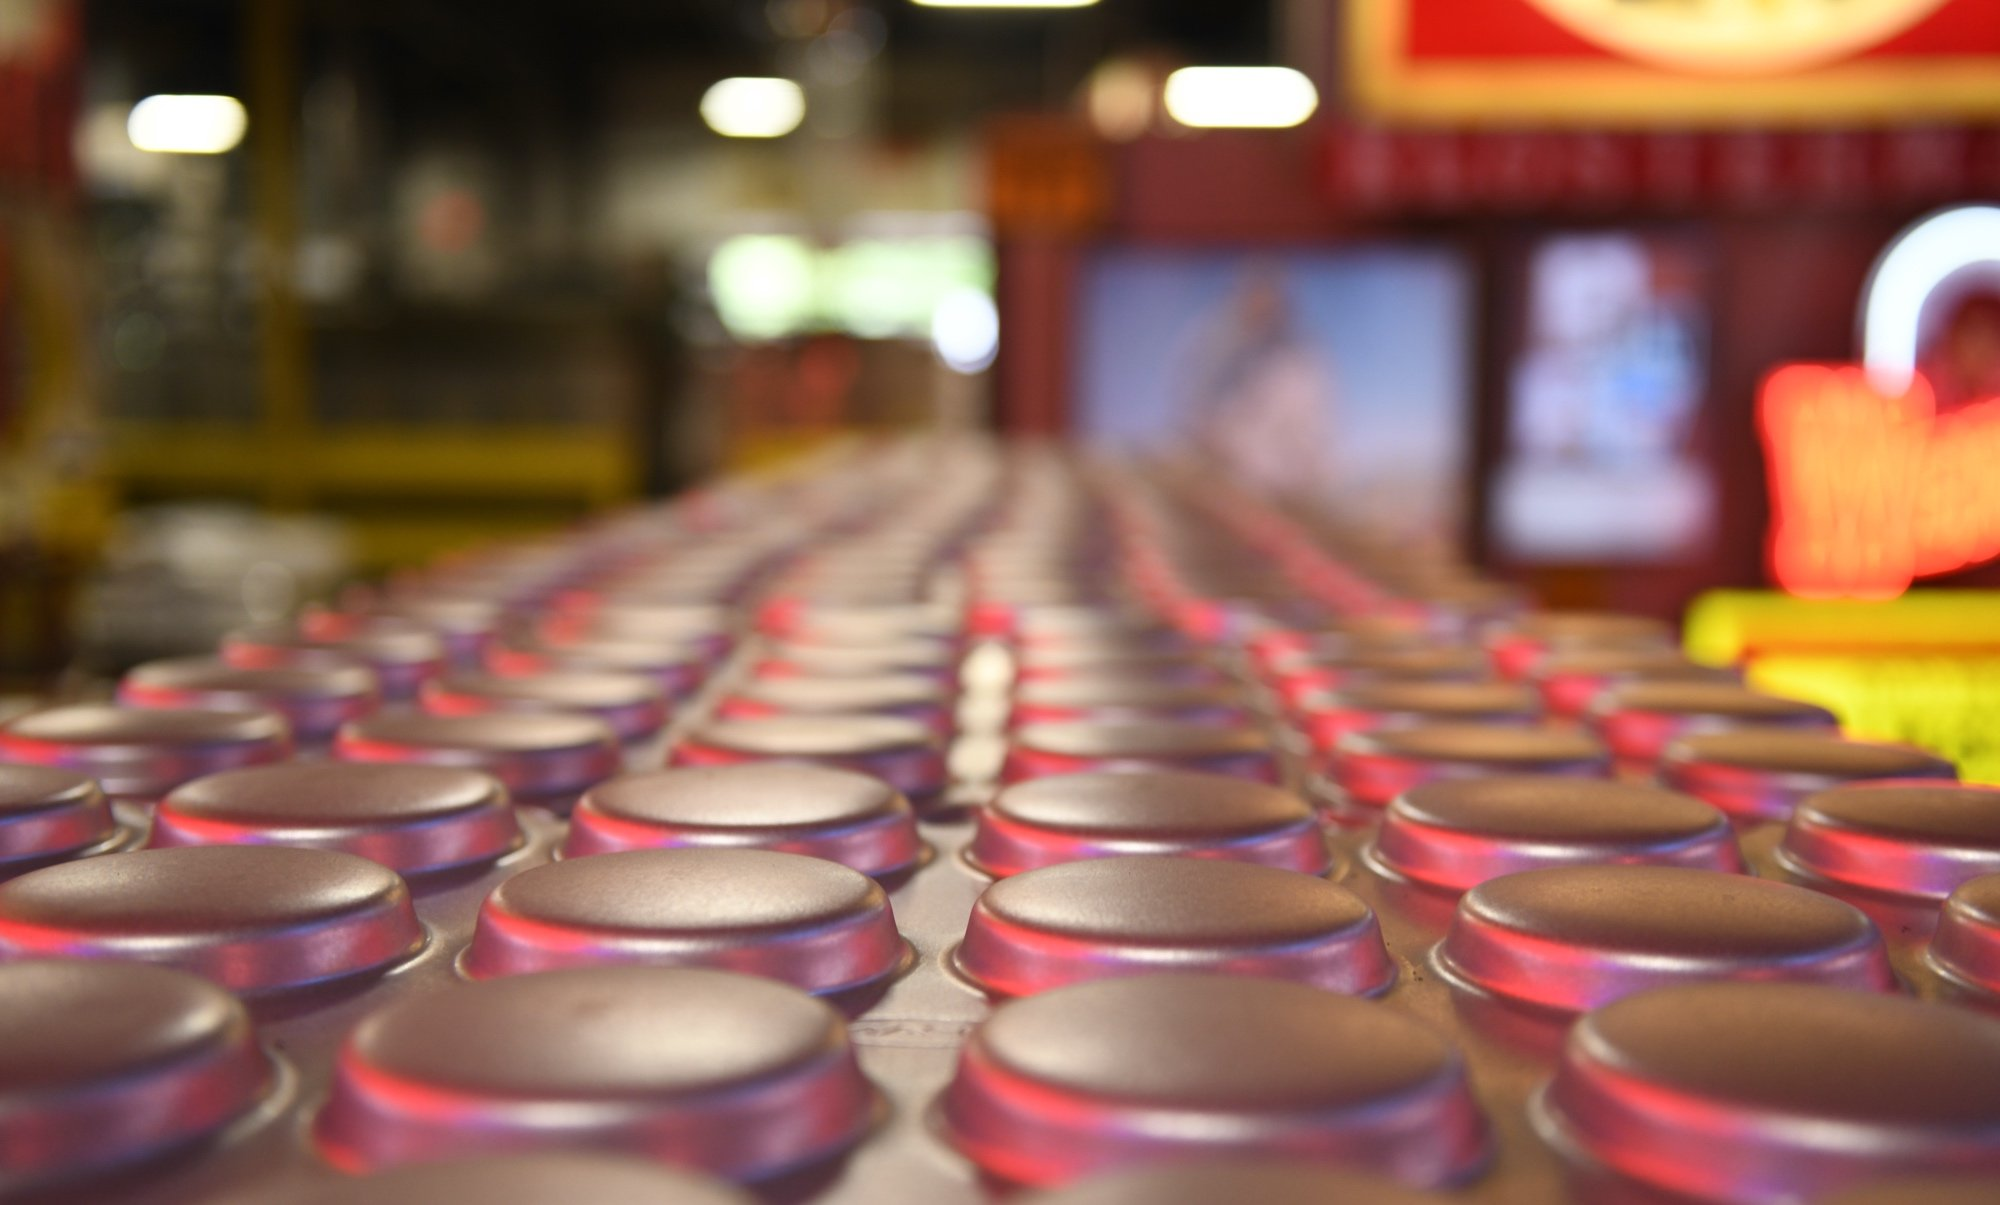 Chicago Metallic Pans under the neon lights at Bundy Baking Solutions